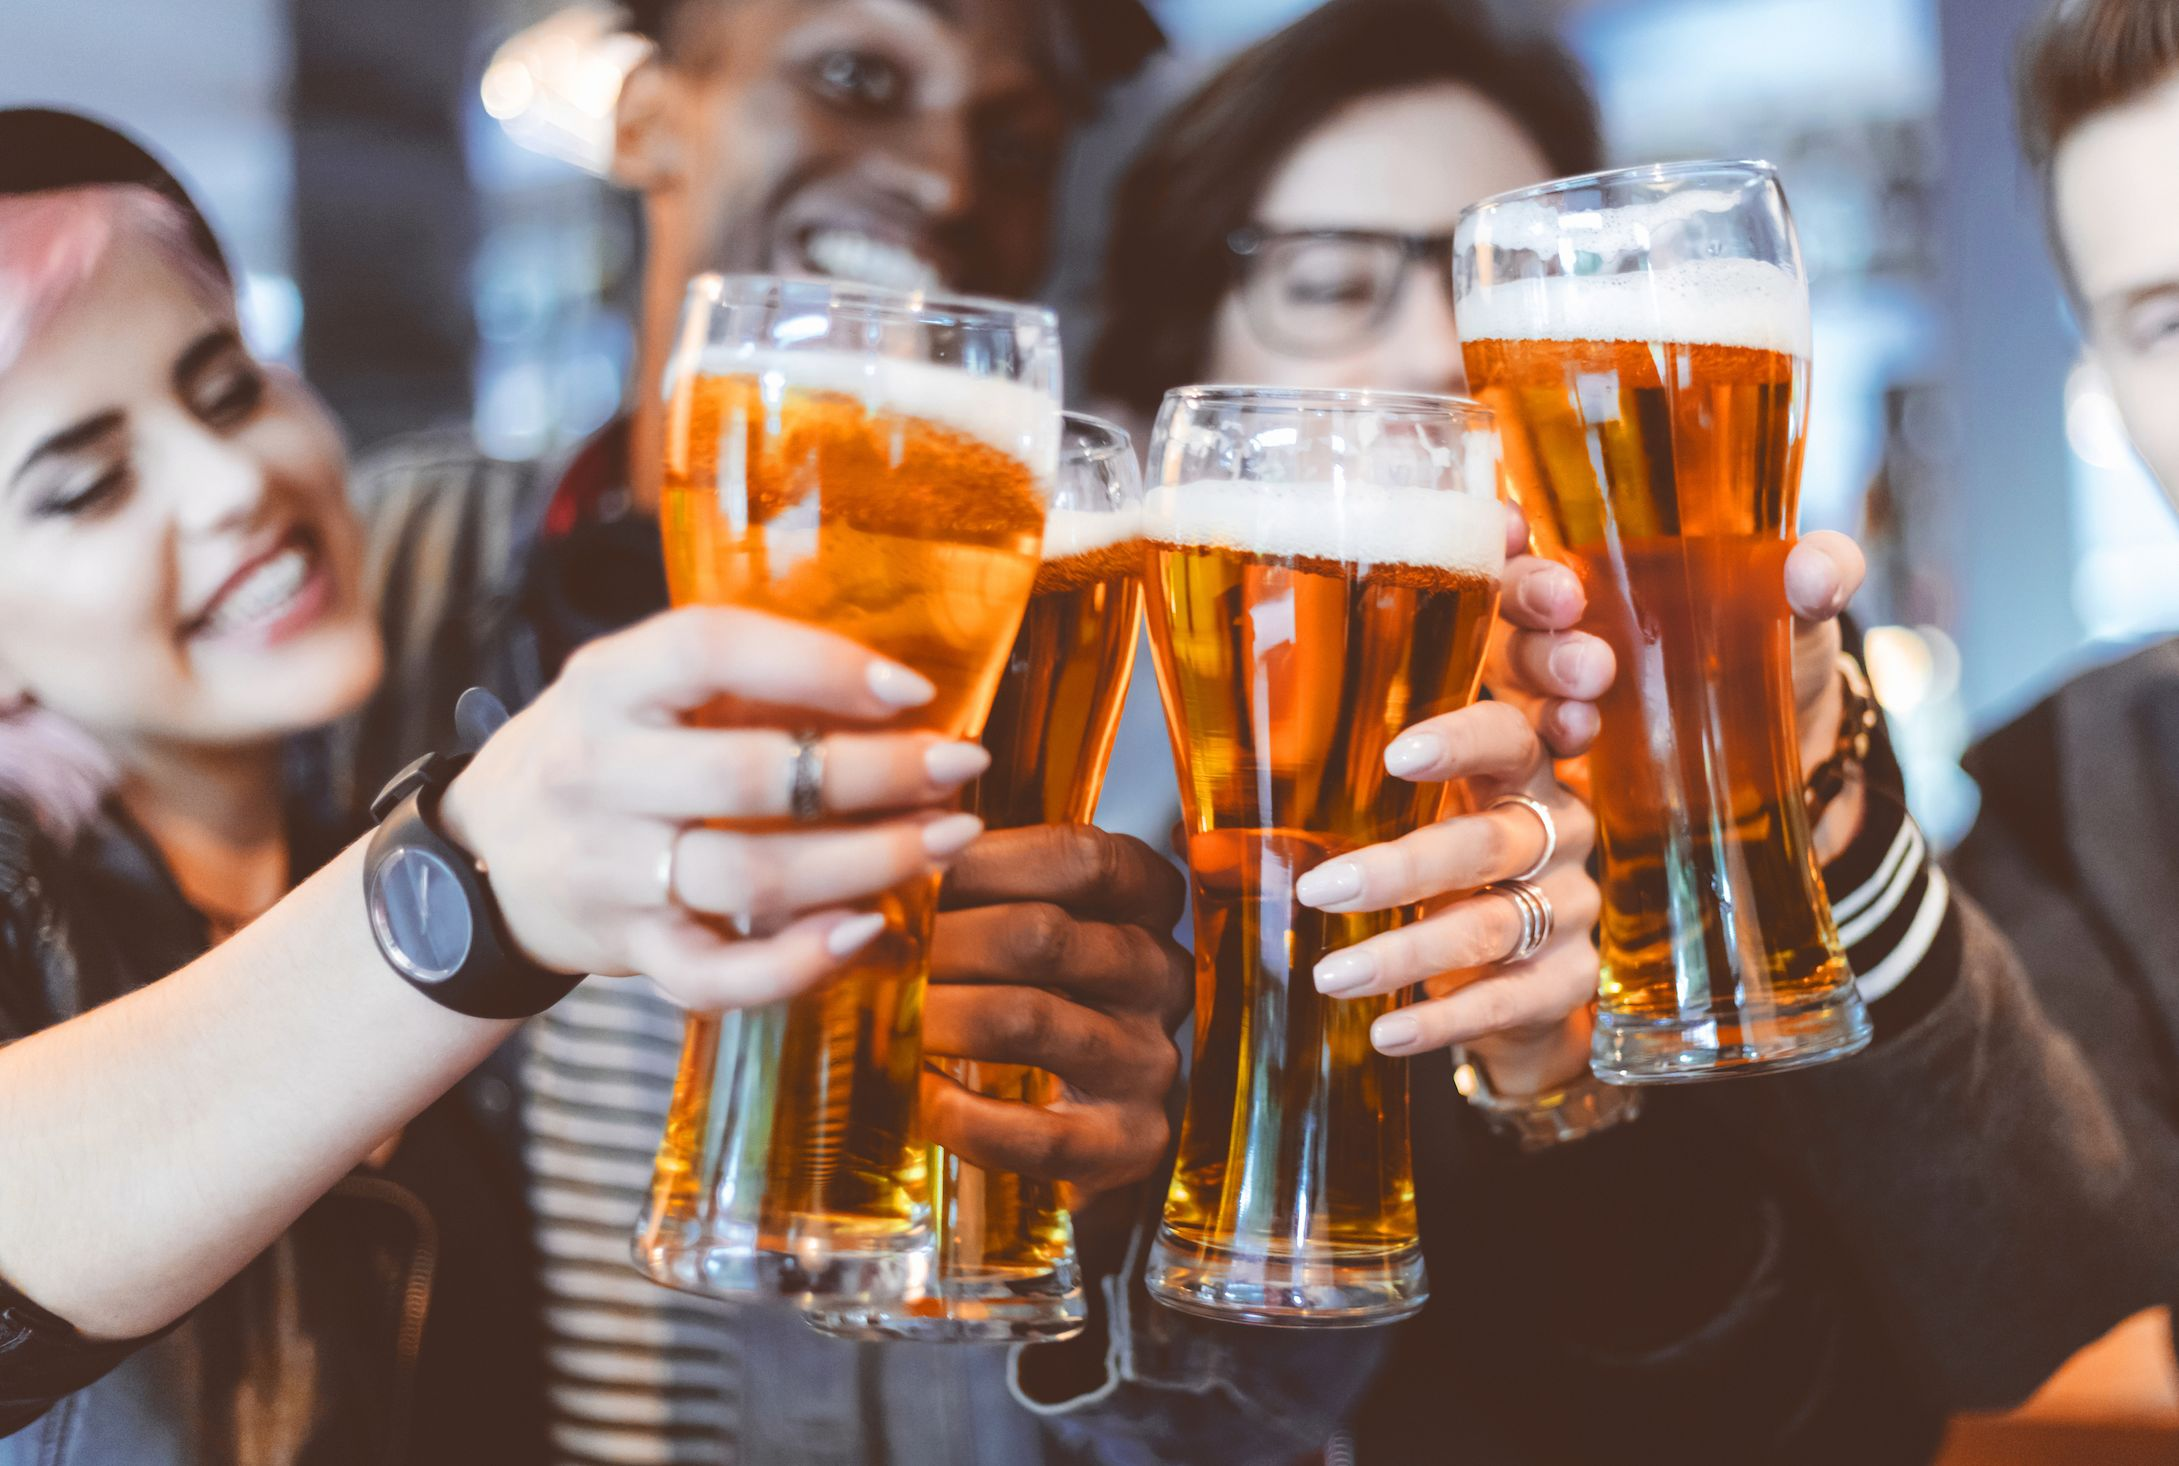 Biden Promised Free Beer for All Americans to Encourage to Vaccinate against COVID-19